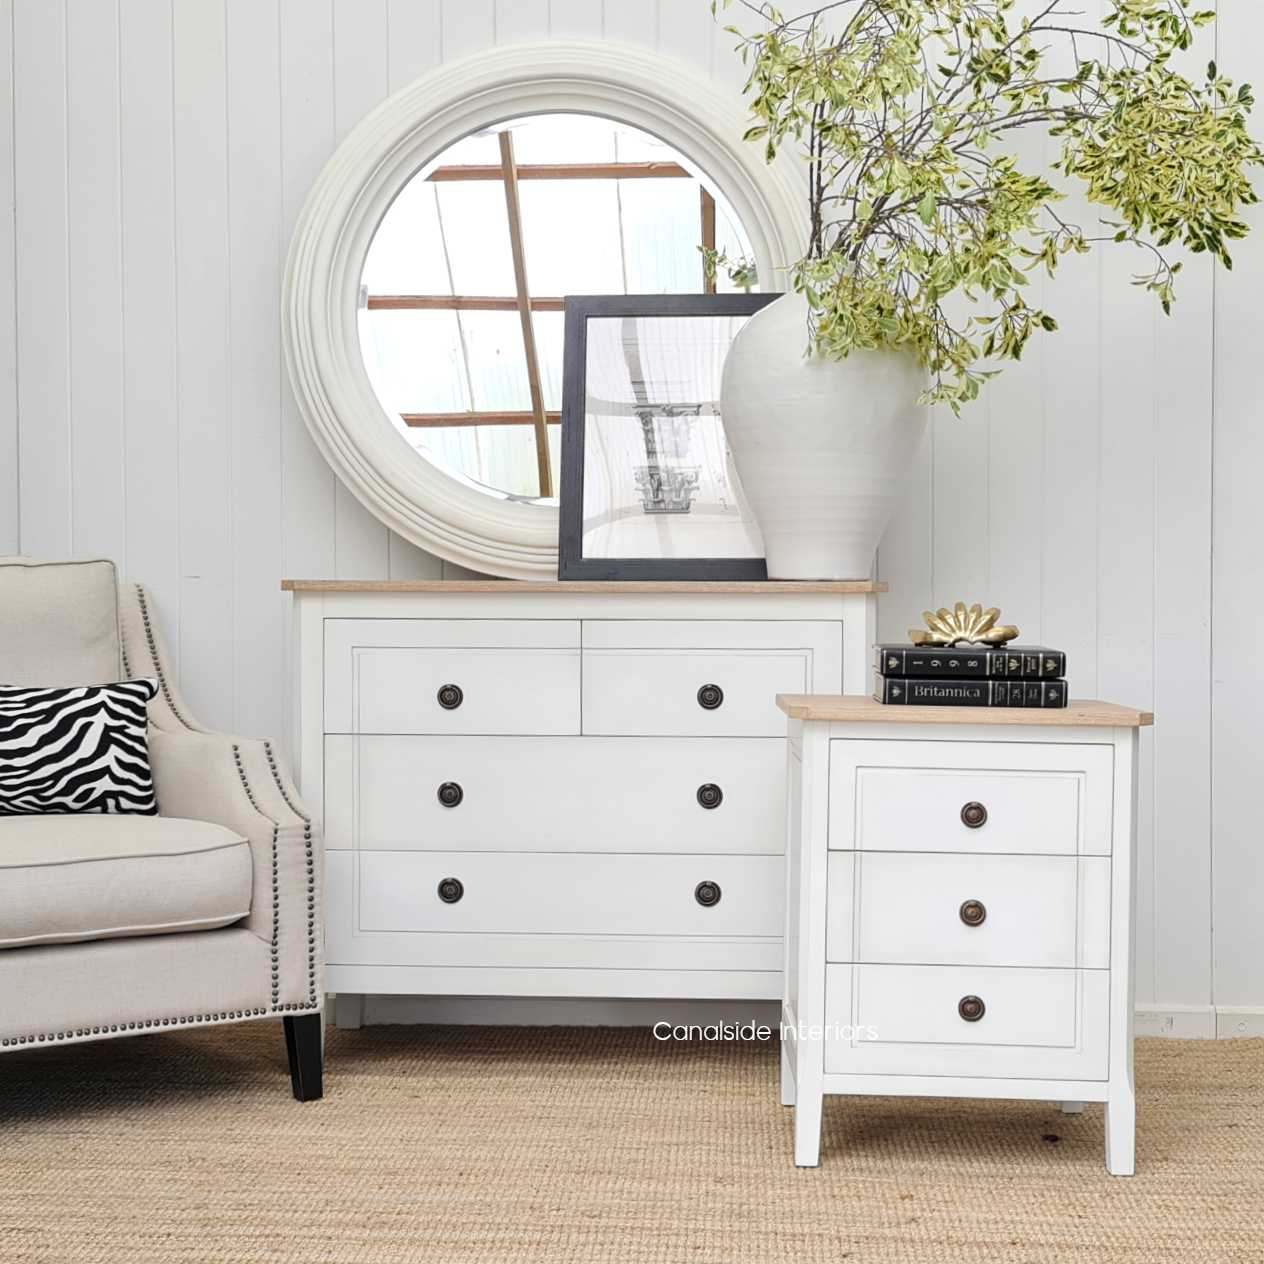 Beckett Chest of Drawers Distressed White Limewash Top  BEDROOM, HAMPTONS Style, PLANTATION Style, BEDROOM Chests & Commodes, TABLES Sideboards & Buffets, STORAGE, STORAGE Sideboards & Buffets